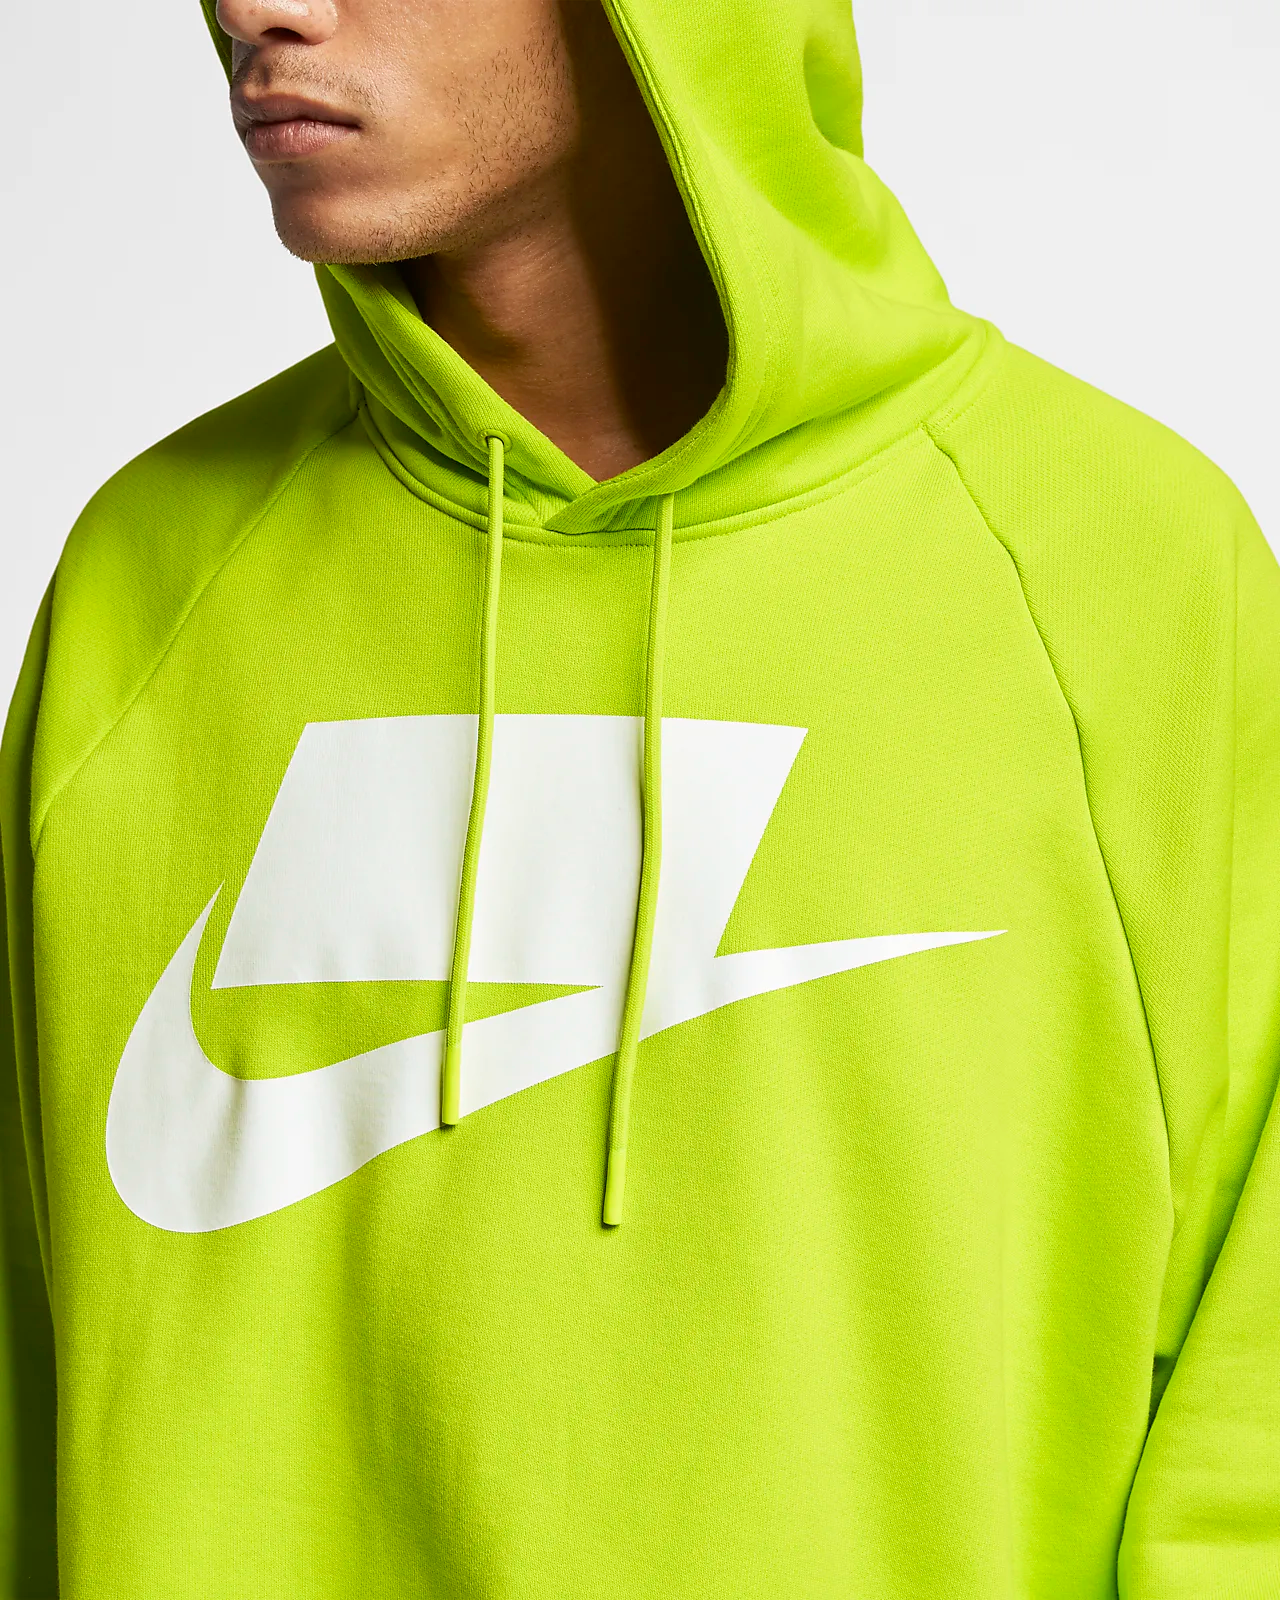 Creta insecto Humedal  Now Available: Nike Sportswear French Terry Block Logo Hoodies — Sneaker  Shouts